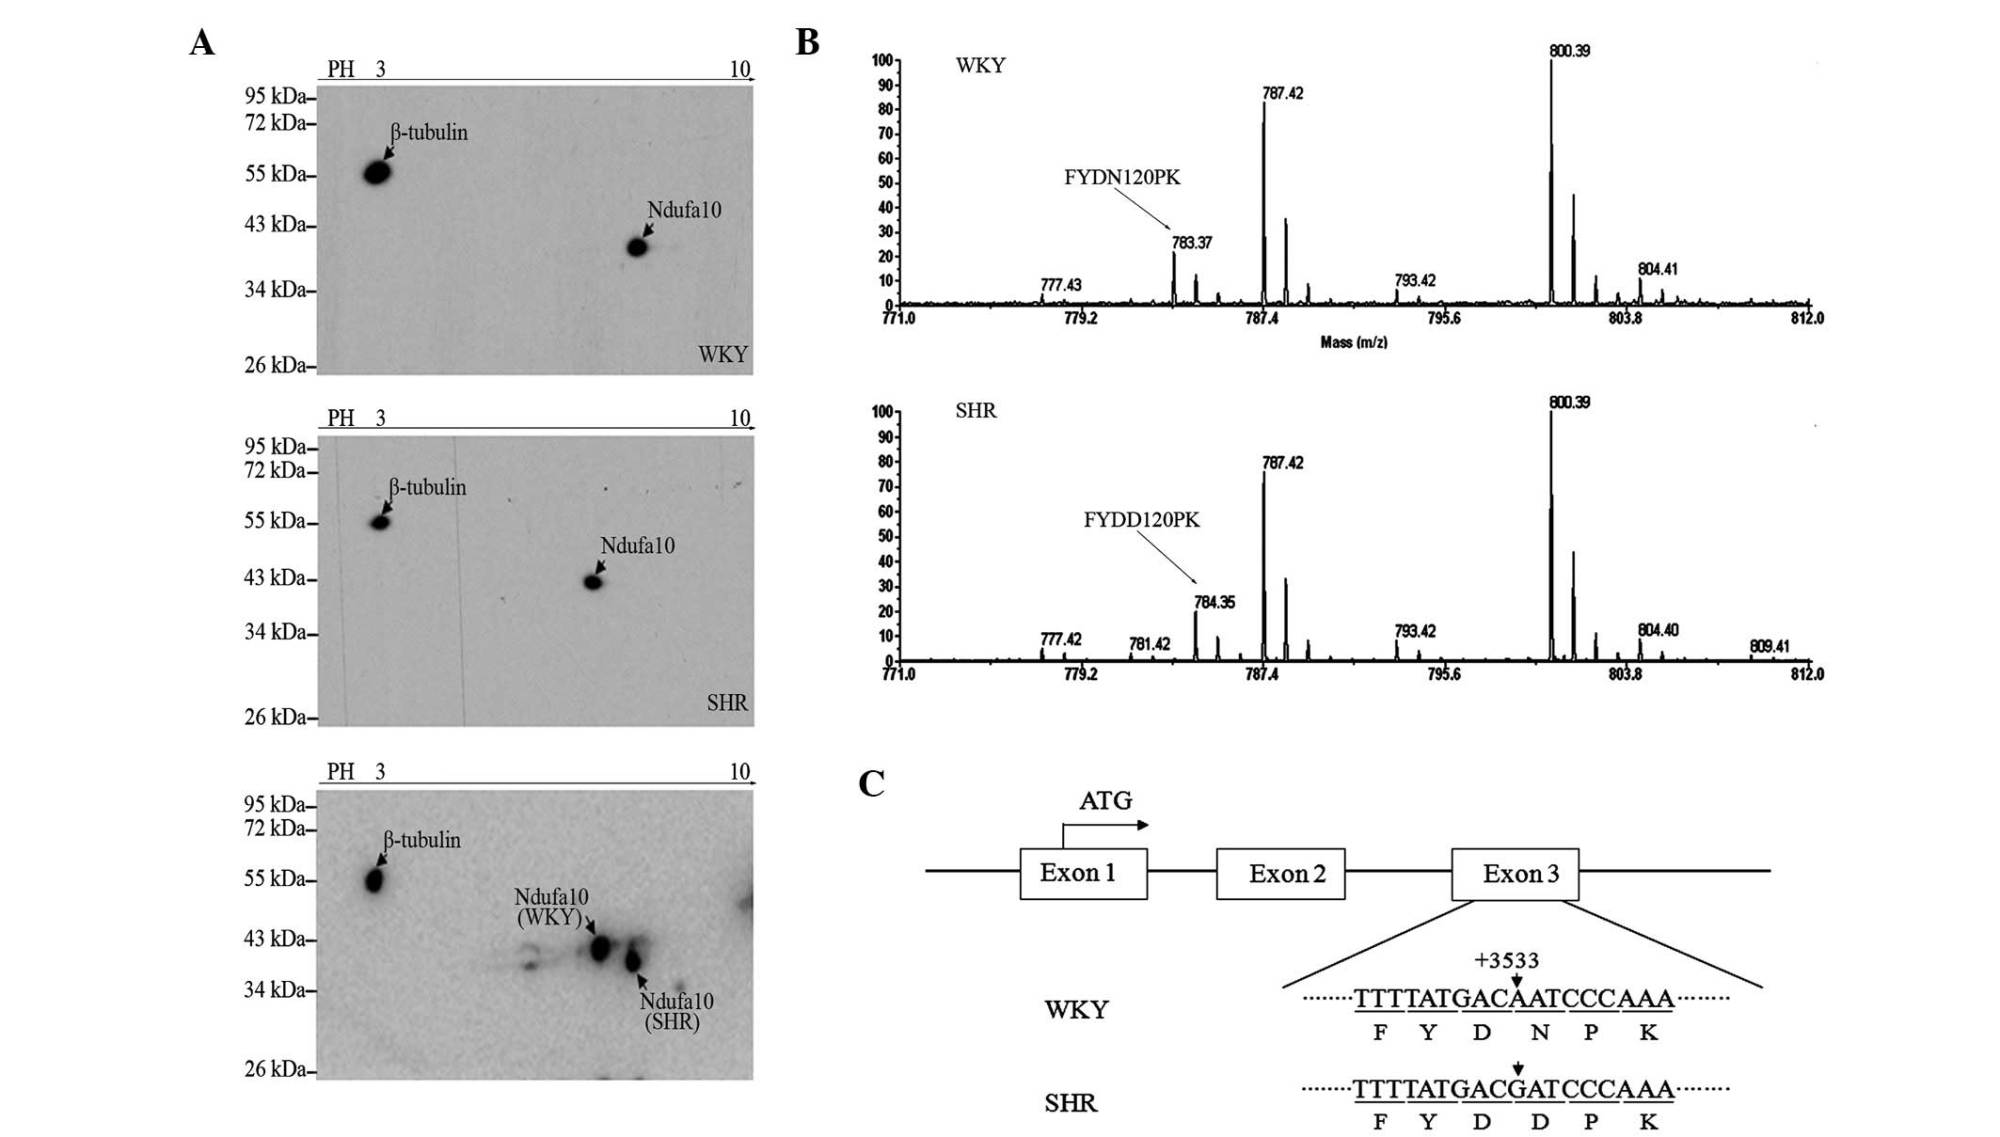 hight resolution of figure 1 ndufa10 variants in a 2d western blot and maldi tof tof tandem ms a a 2d western blot of ndufa10 in the left ventricle of wky and shr rats is